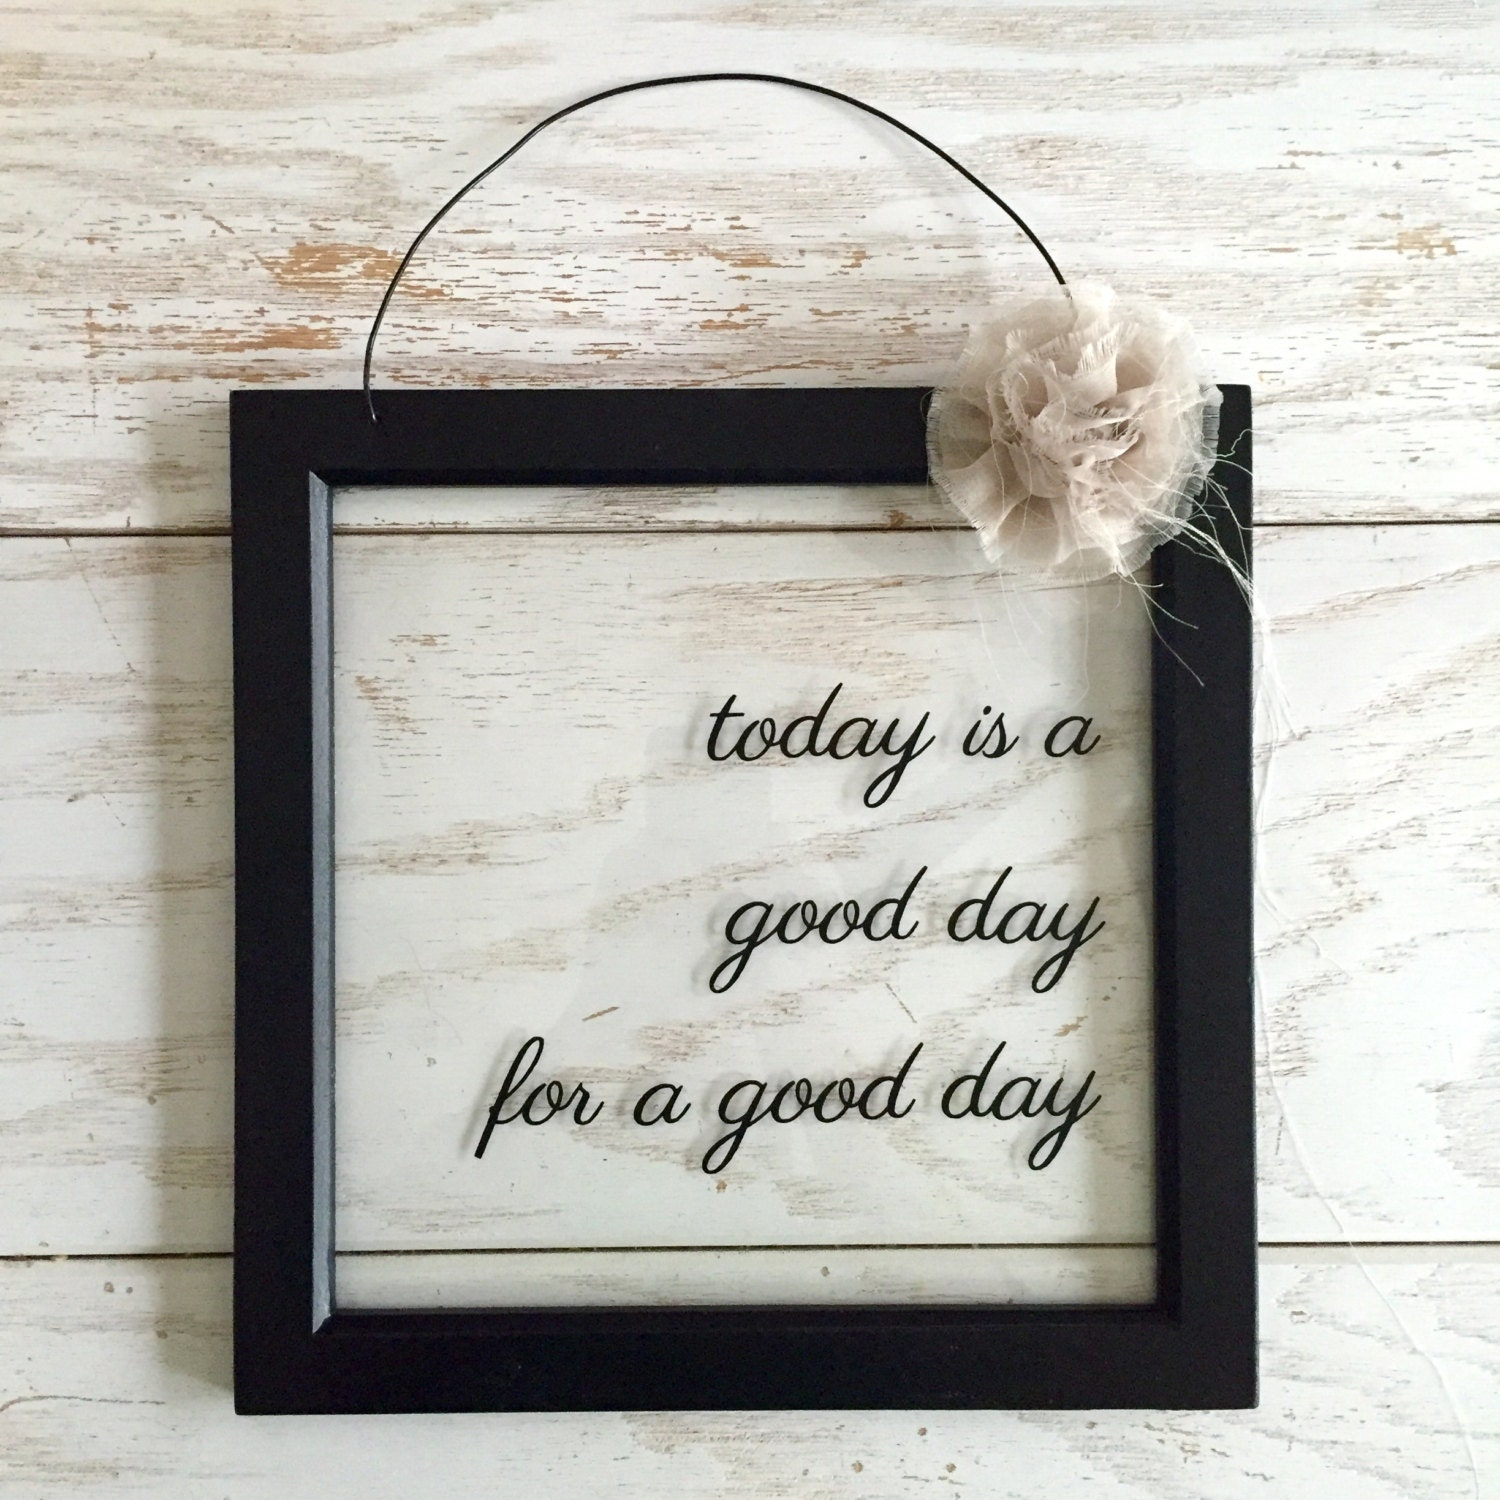 Today Is A Good Day For A Good Day Sign Good Day Sign Farmhouse decor inspirational decor motivational sign Fixer Upper Magnolia Market